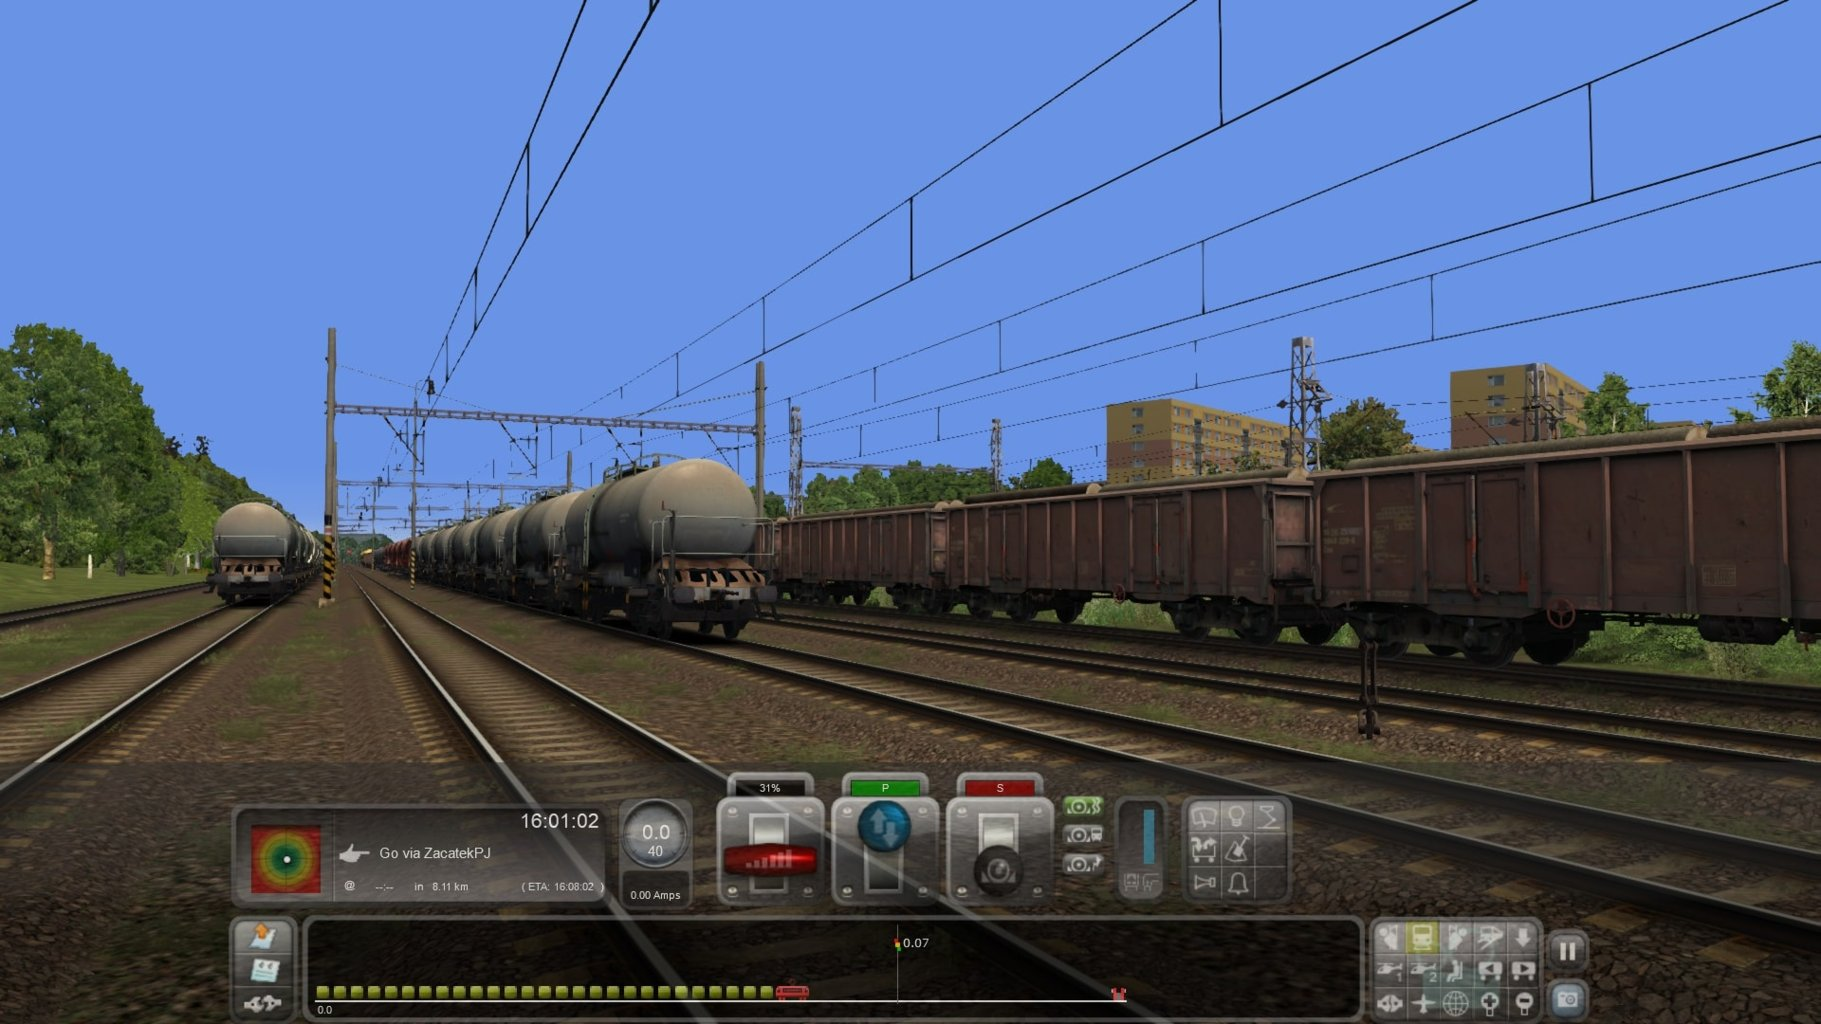 Railworks Train Simulator Screenshot 2021.02.25 - 12.45.16.59.jpg